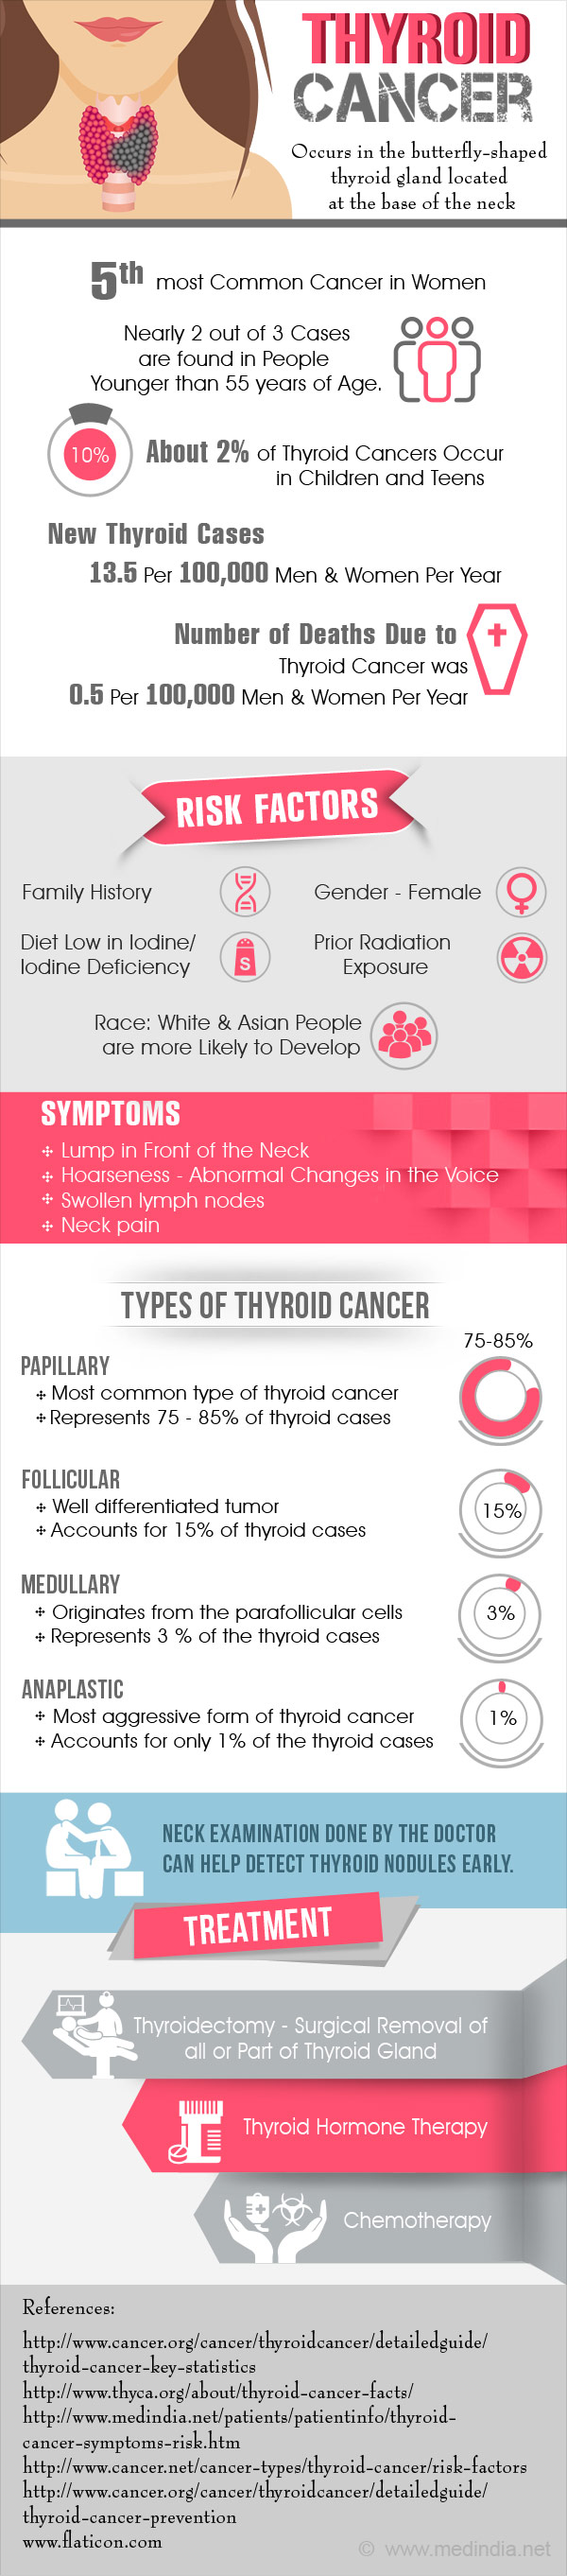 Thyroid Cancer - Infographic